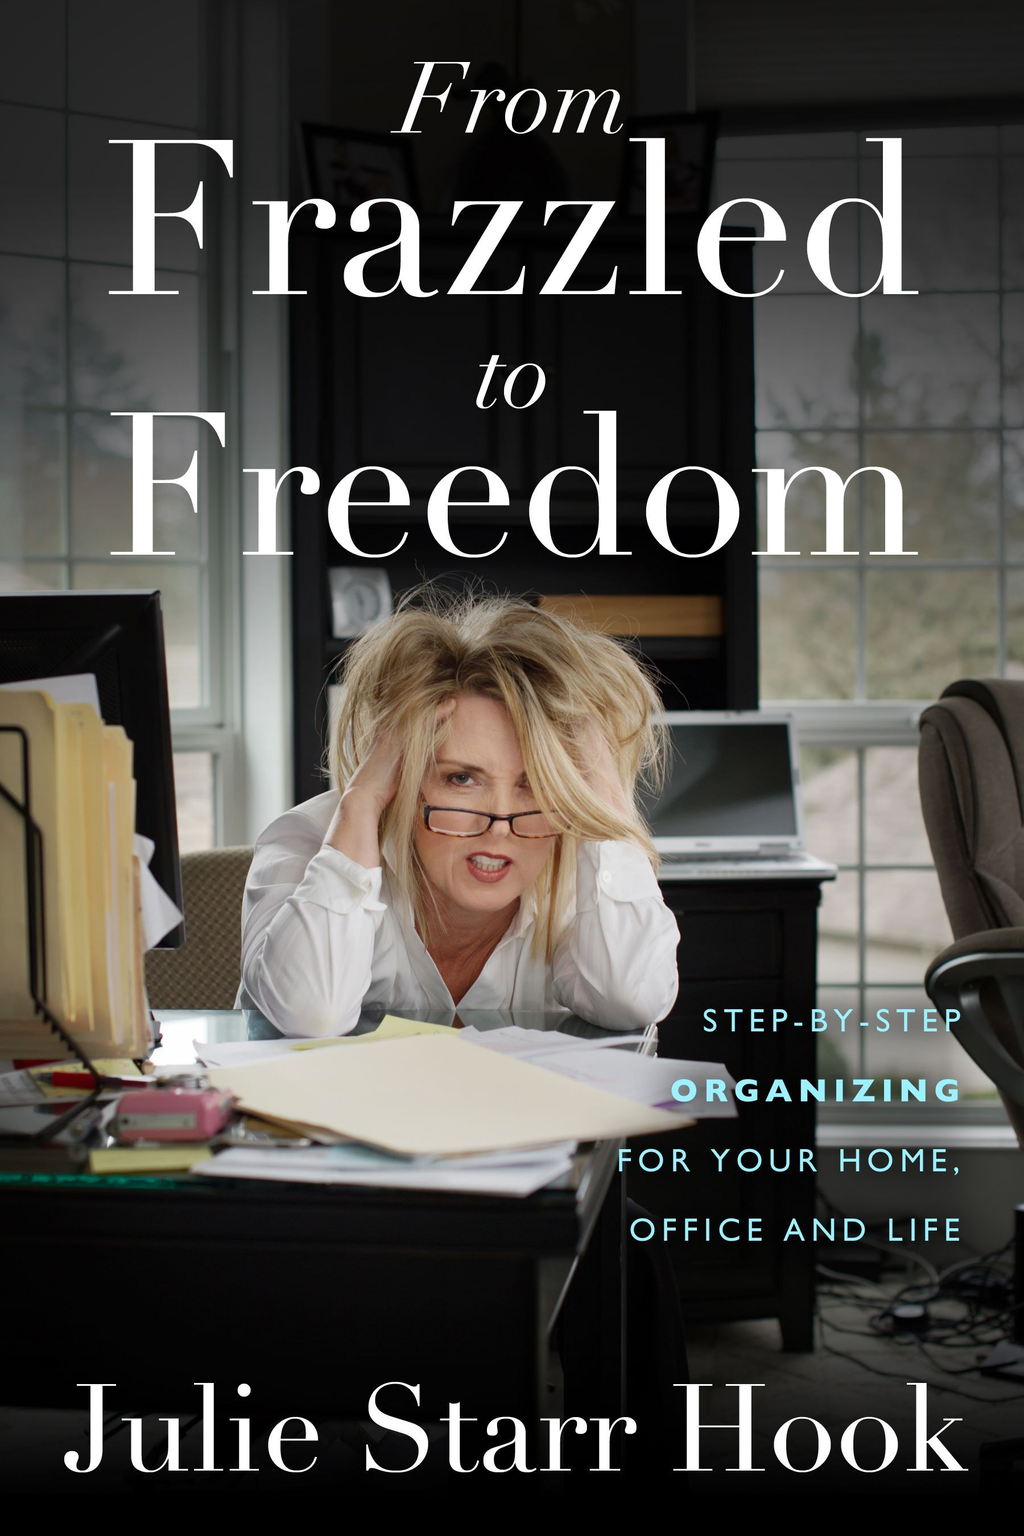 From Frazzled to Freedom: Step-by step Organizing For your Home and Office Life By: Julie Starr Hook